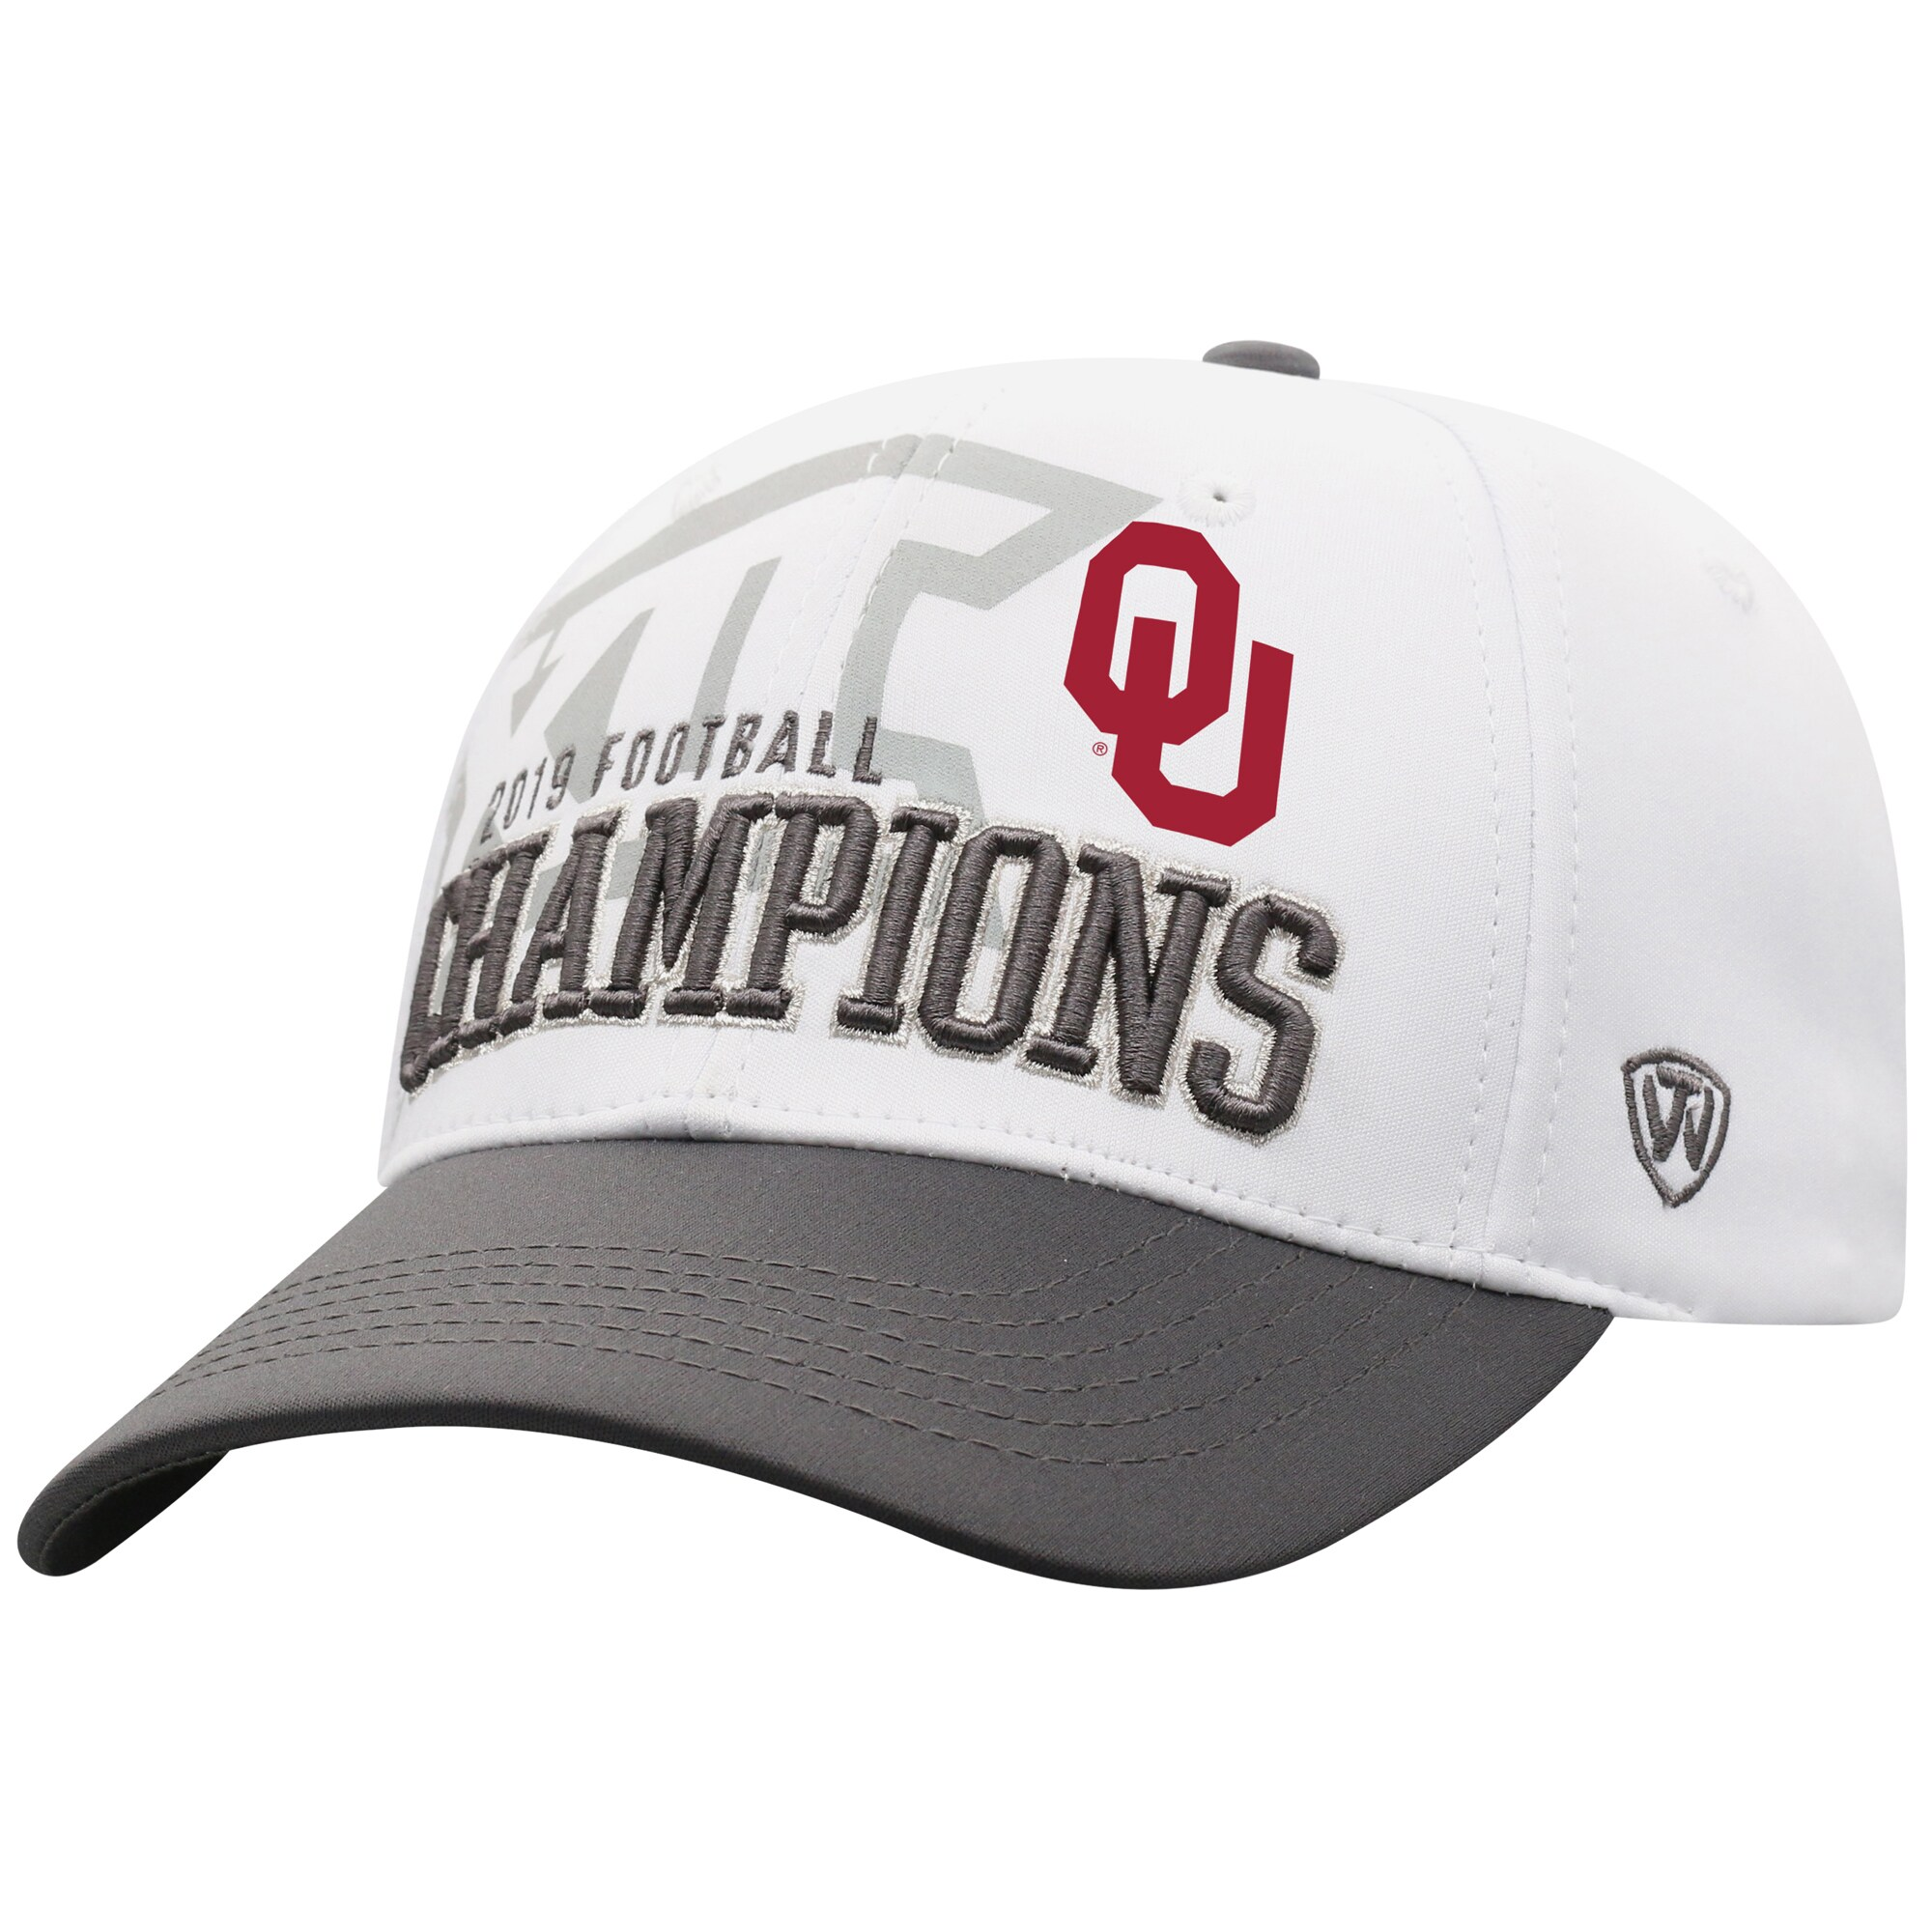 Oklahoma Sooners Top of the World 2019 Big 12 Football Champions Locker Room Adjustable Hat - White/Gray